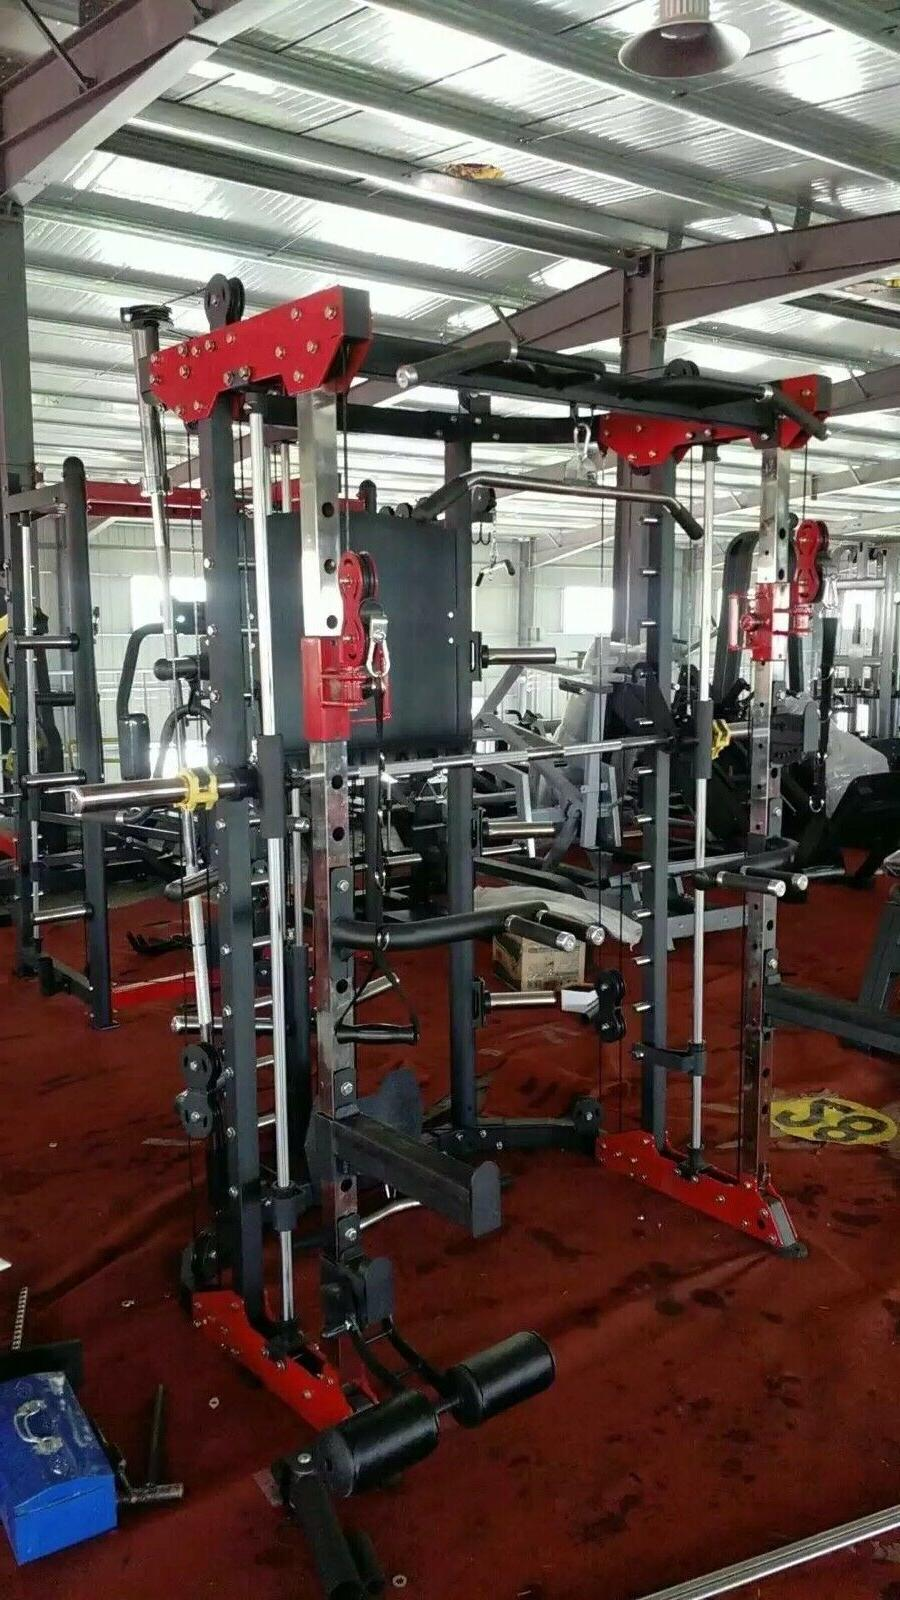 Commercial Style Home Gym - Smith Machine, Cables